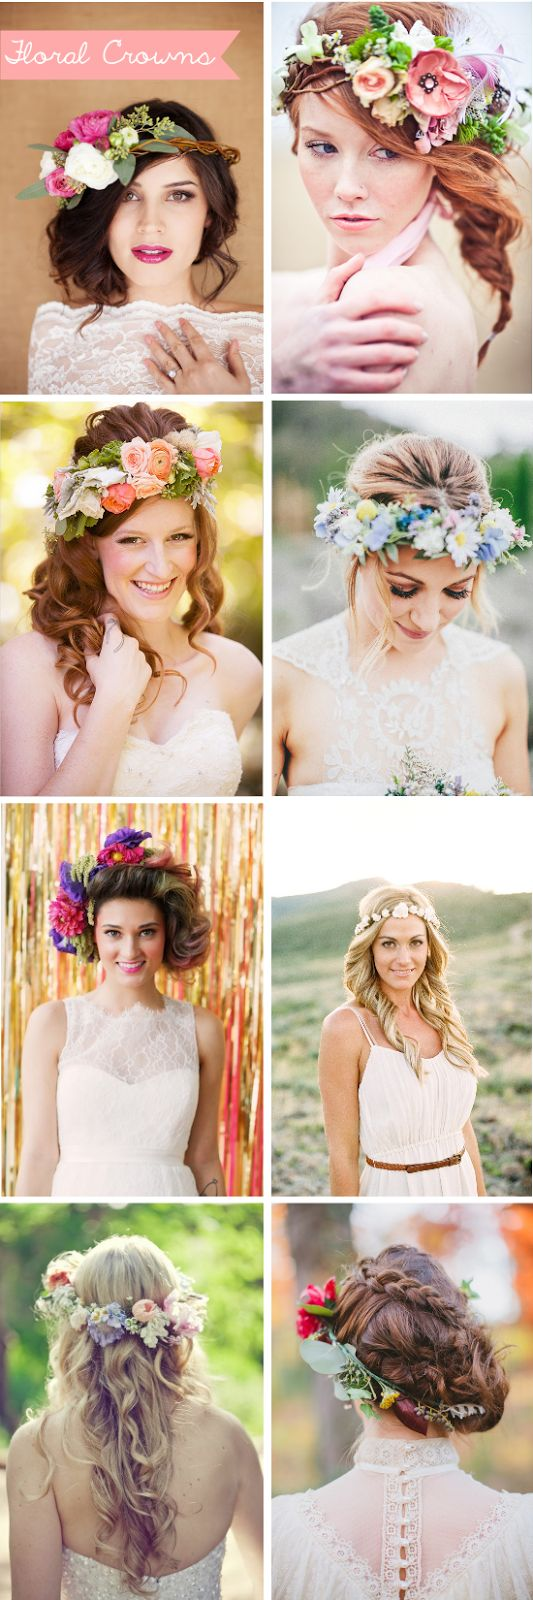 Bridal floral crowns